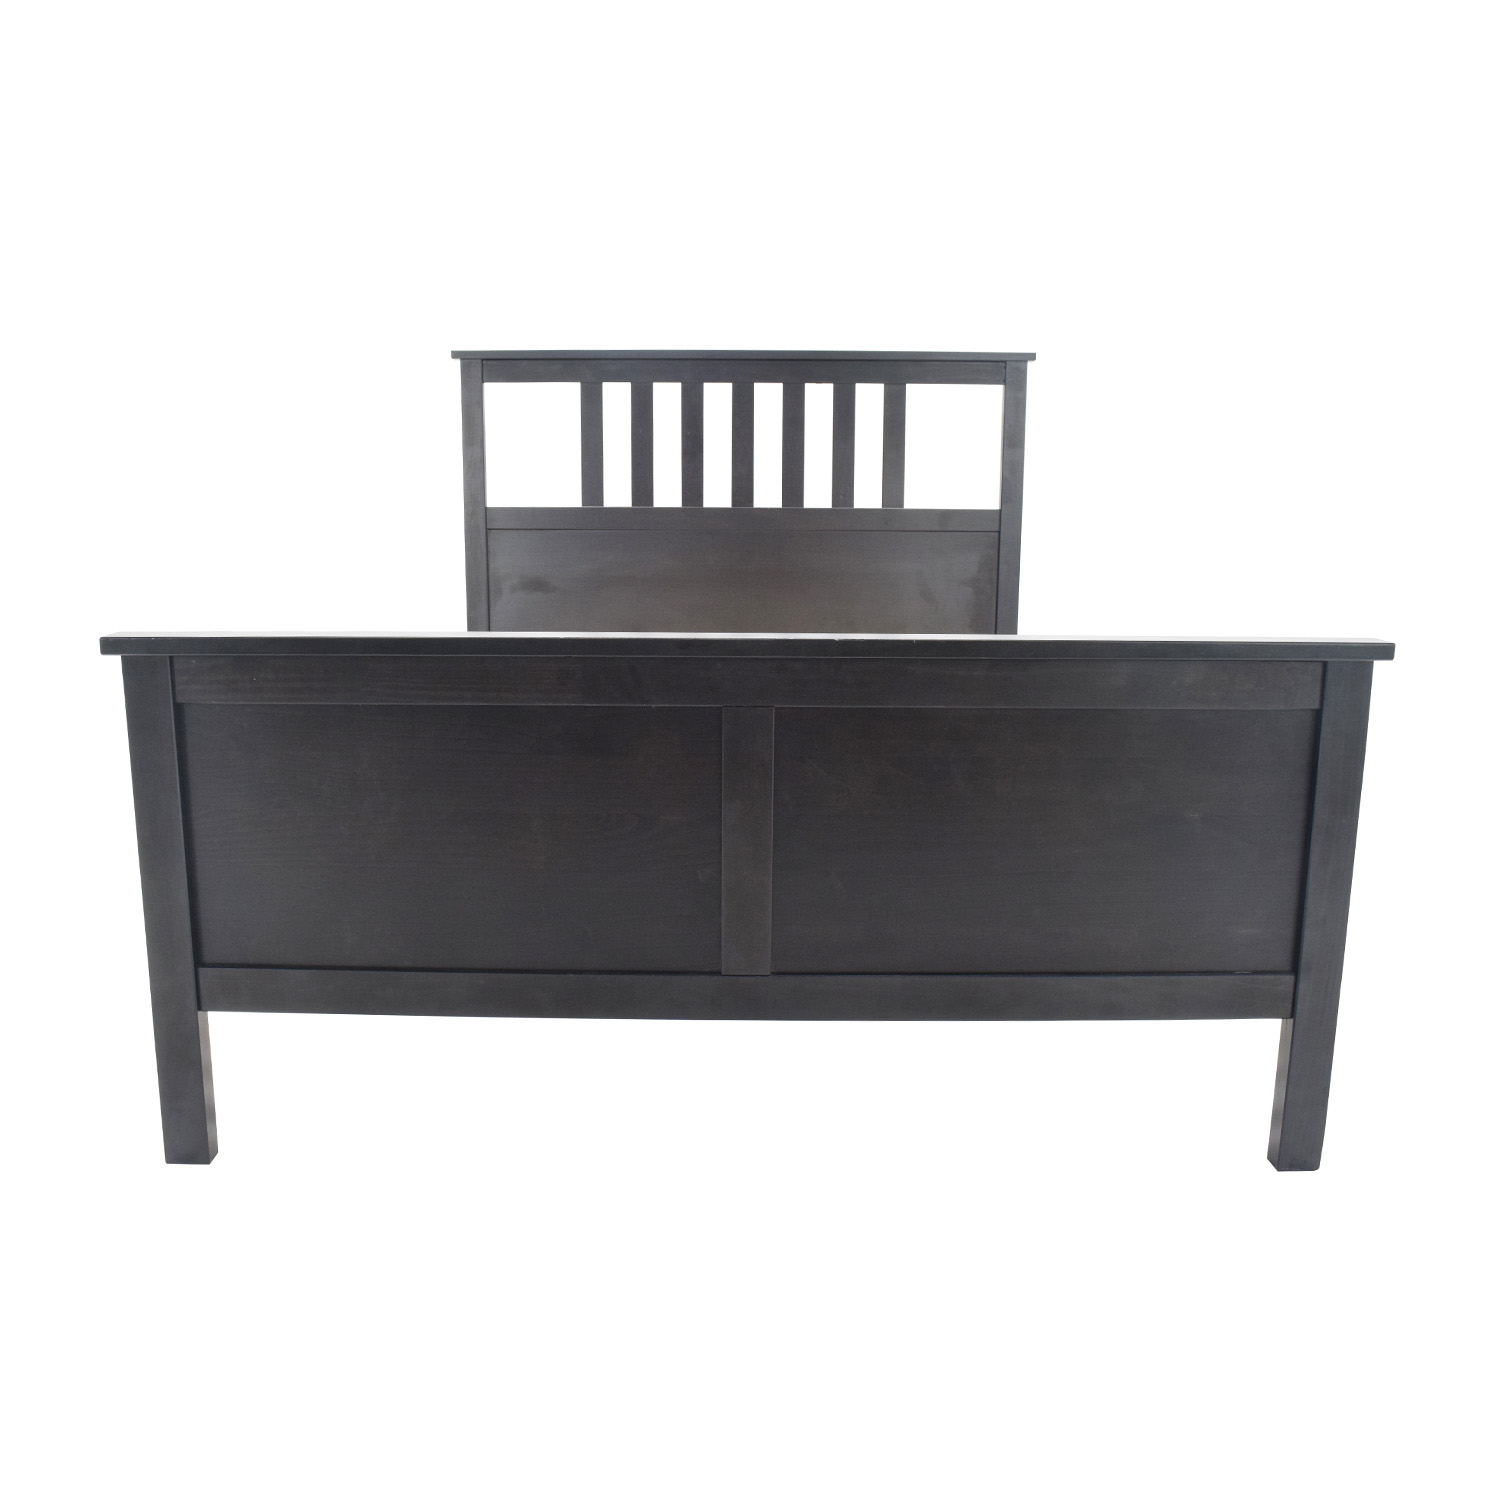 57 off ikea queen hemnes bed frame beds. Black Bedroom Furniture Sets. Home Design Ideas